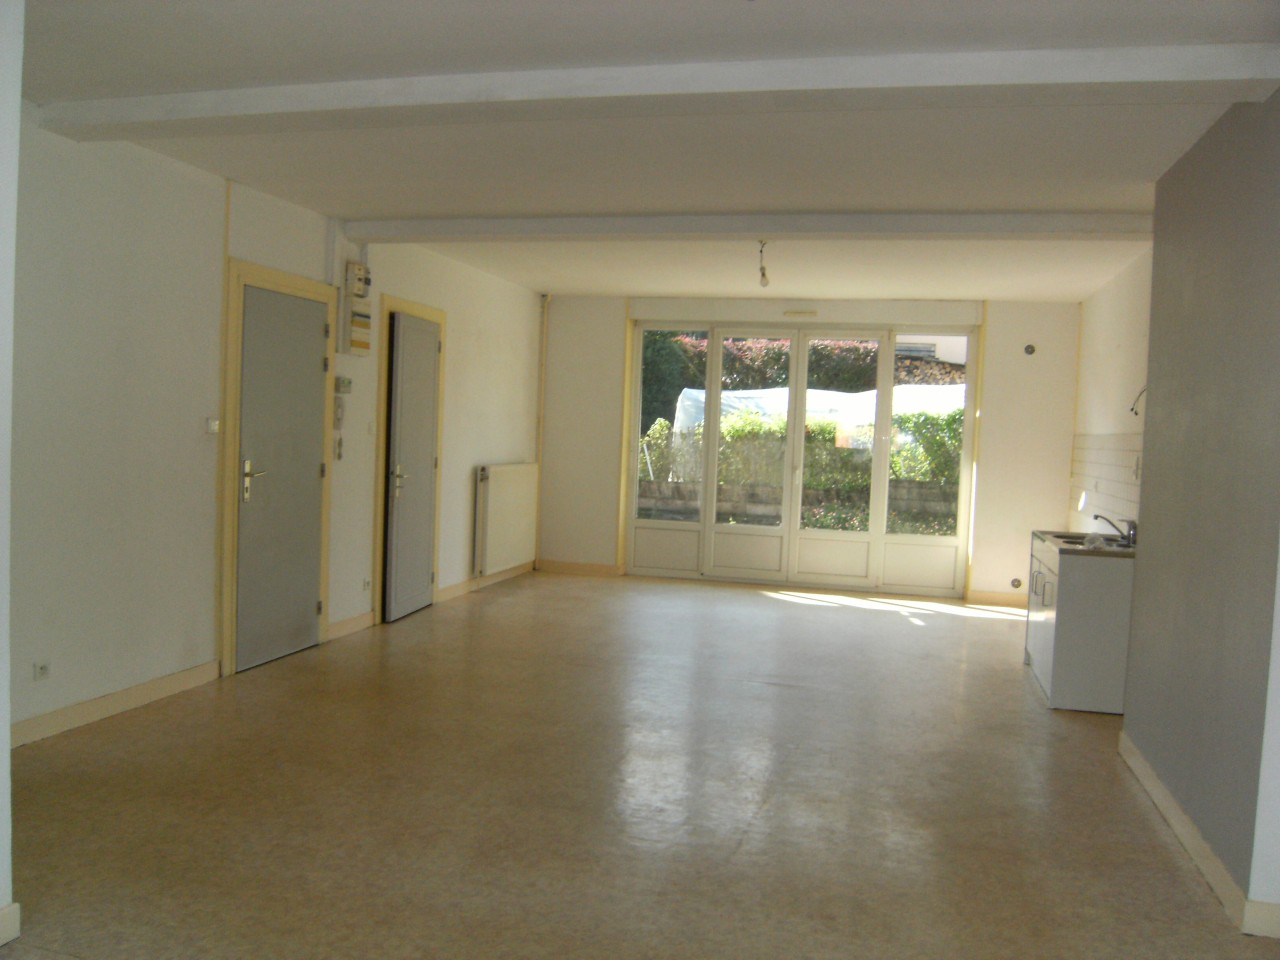 Agence immobili re g rardmer annonce appartements n 2296 for Agence immobiliere gerardmer